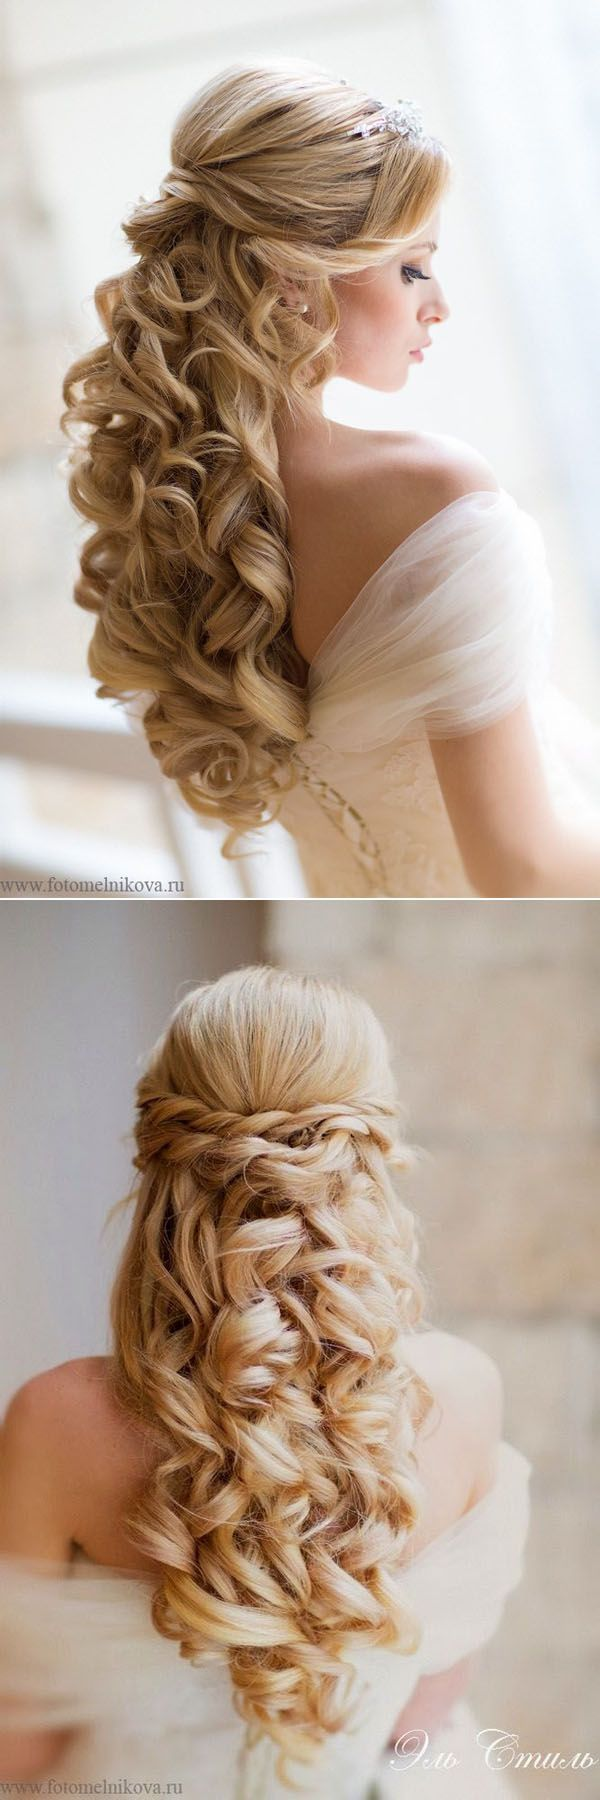 Romantic wedding hairstyles best photos Наш свадебный образ